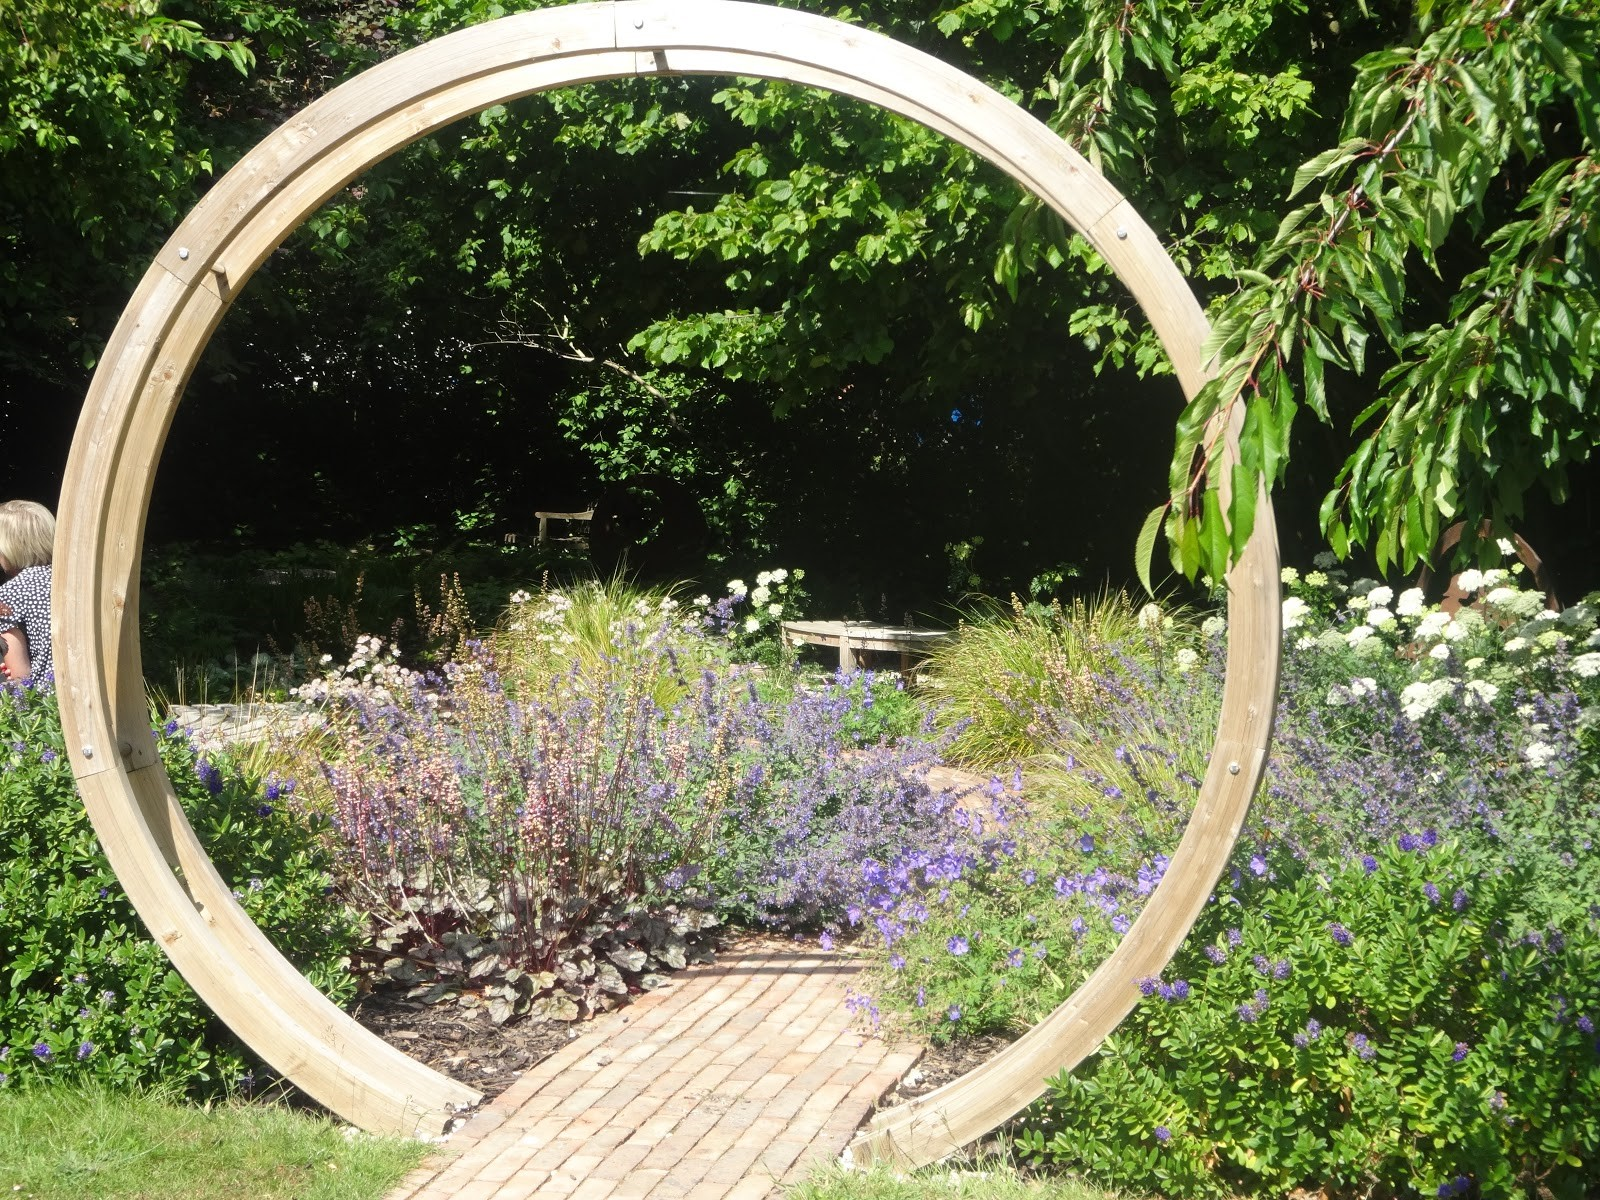 The_Woodland_Garden - Our_Space_to_Remember_and_Reflect_at_MGGS